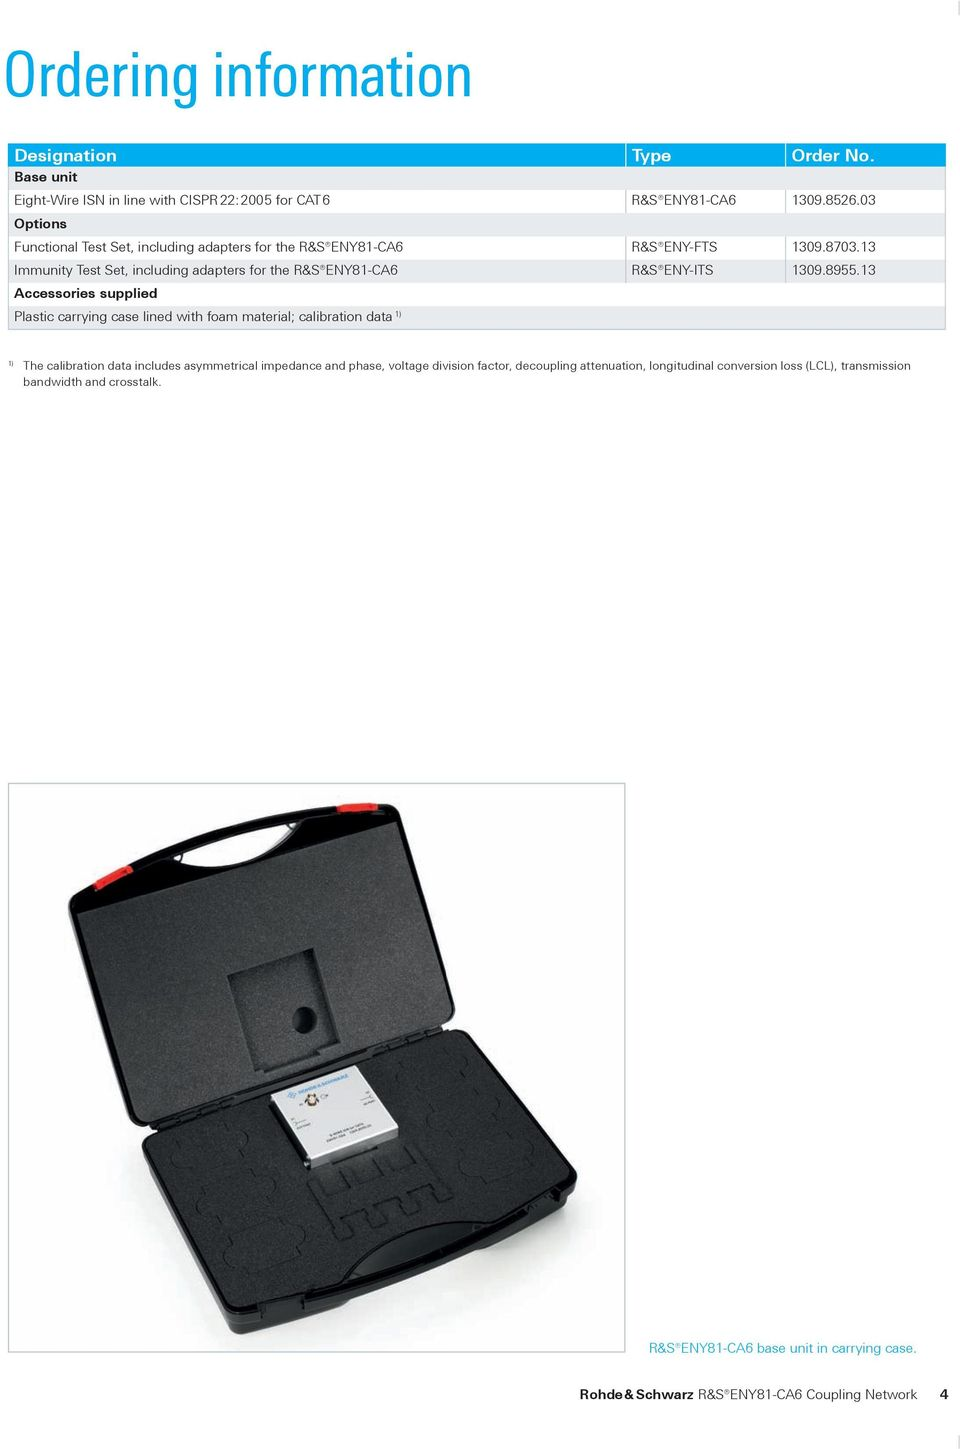 13 Immunity Test Set, including adapters for the R&S ENY81-CA6 R&S ENY-ITS 1309.8955.